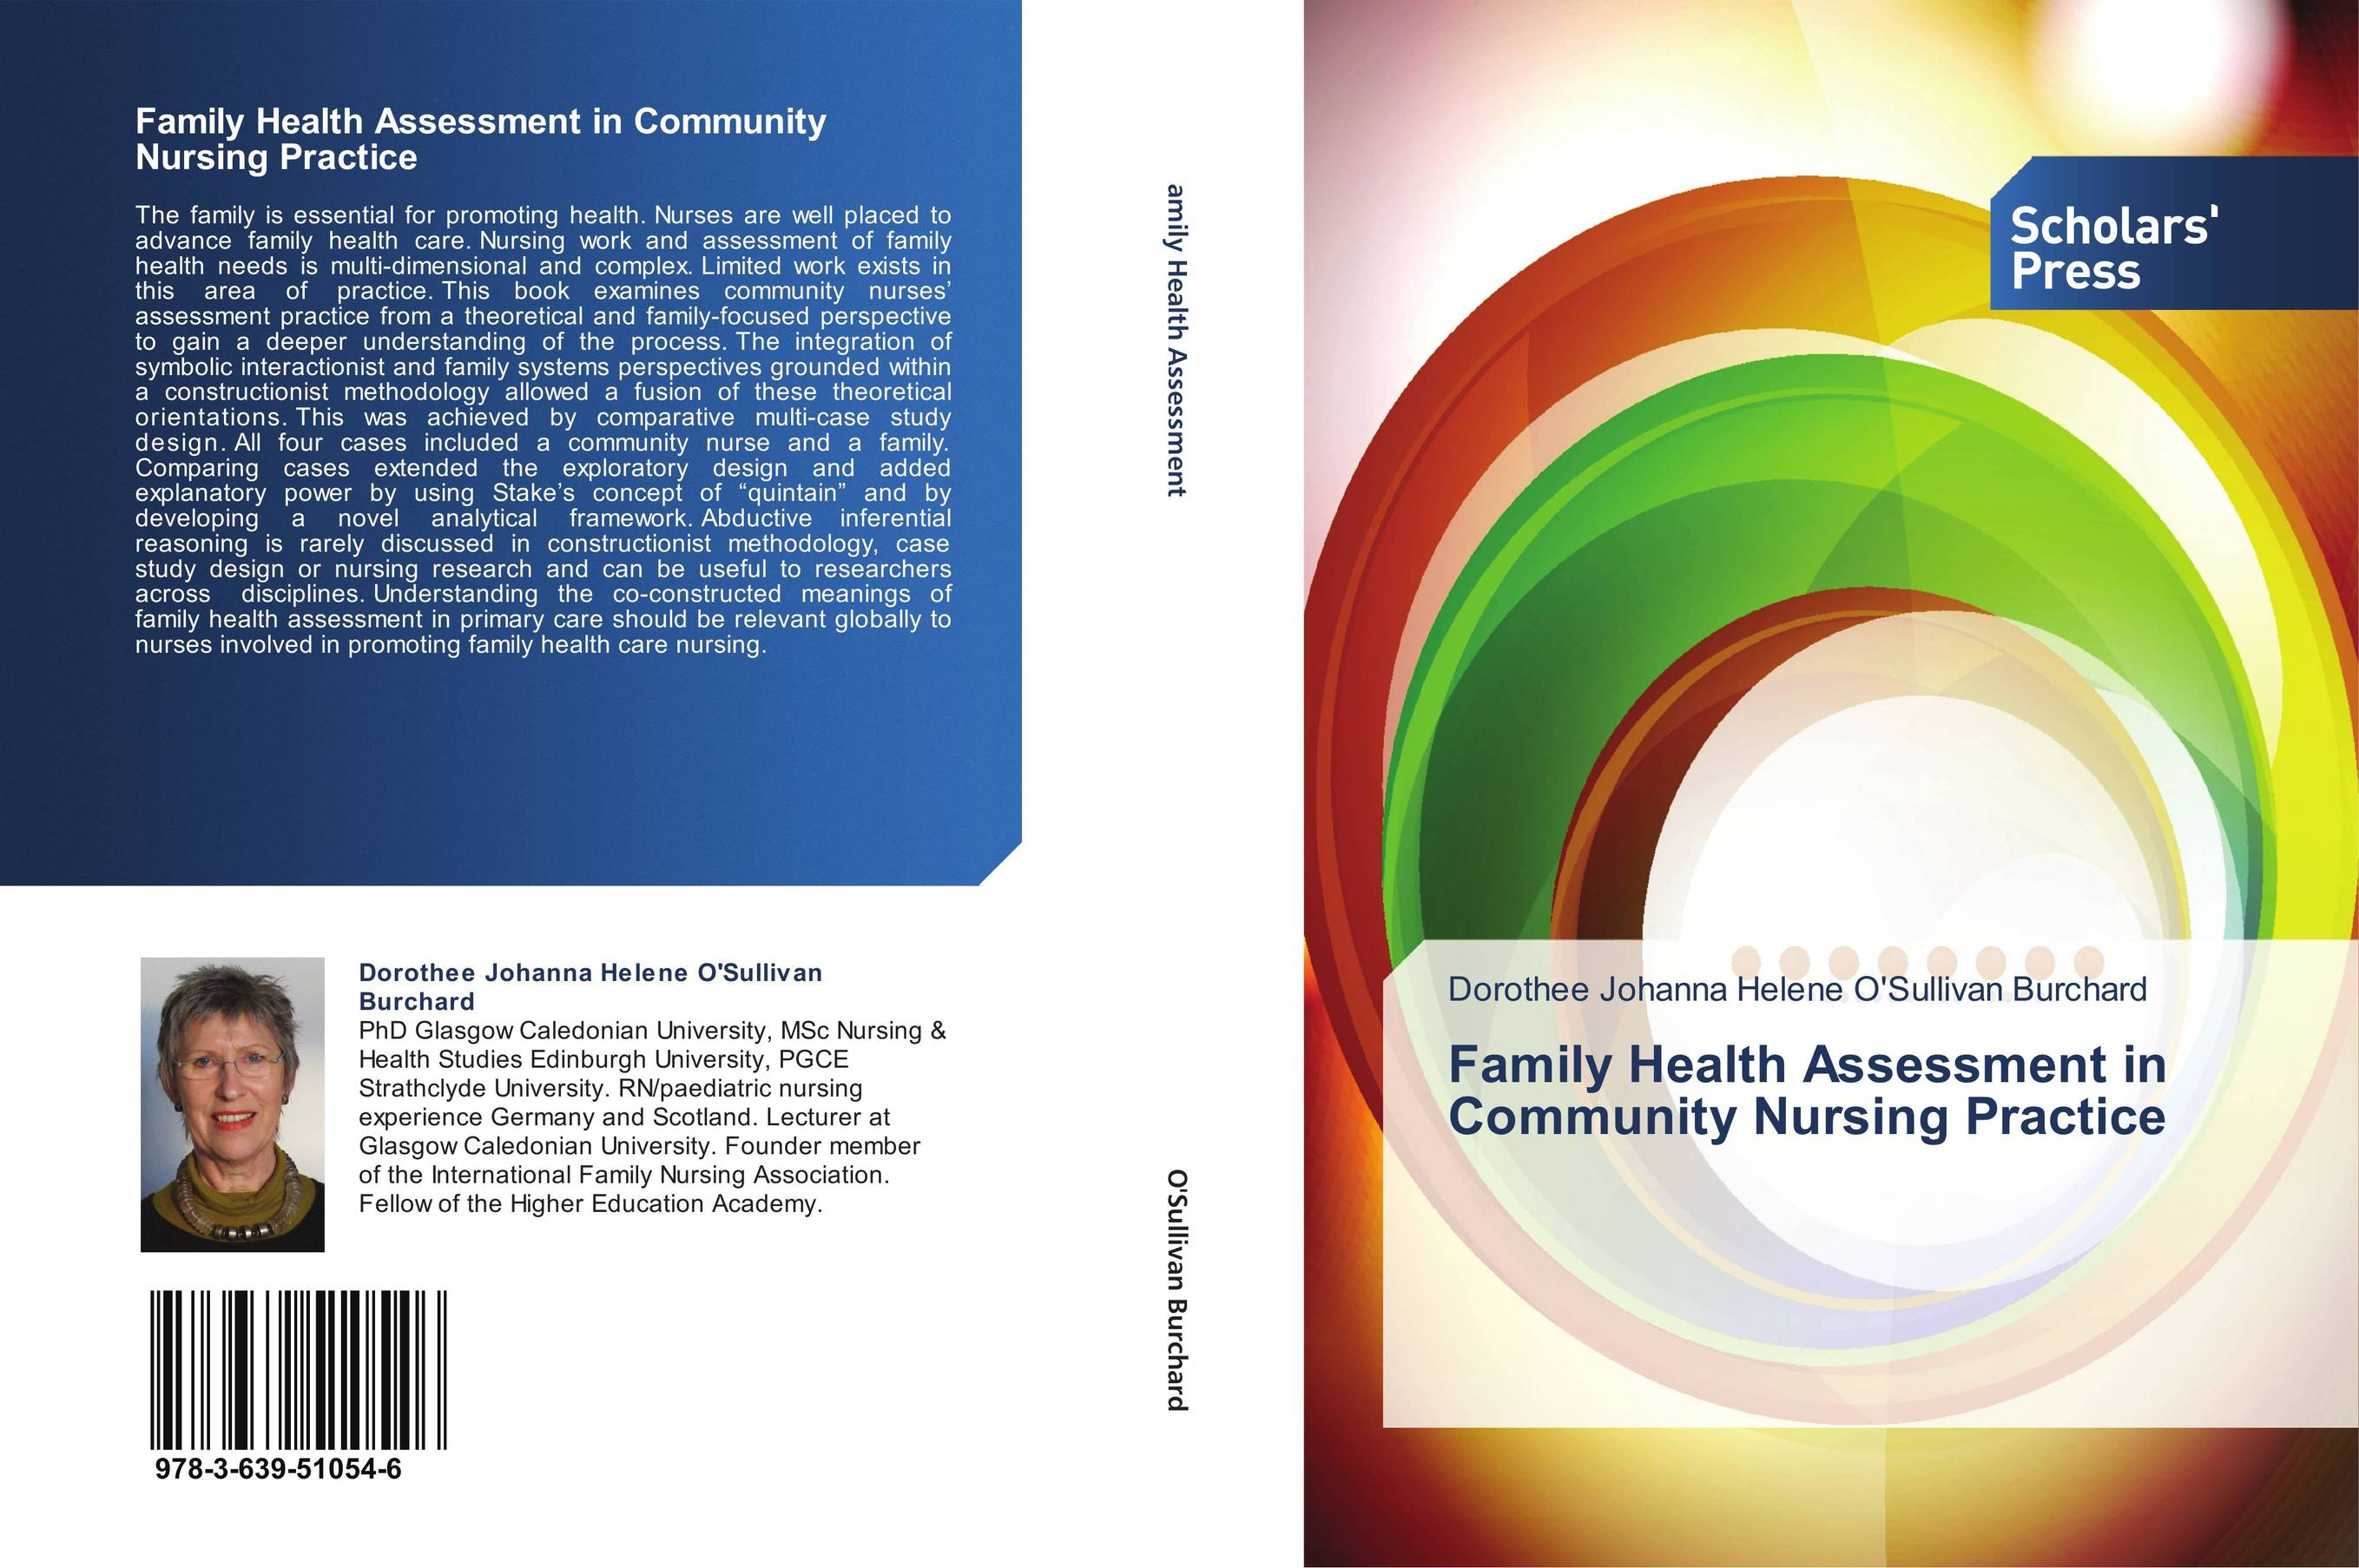 9783639510546 Family Health Assessment in Community Nursing Practice Dorothee